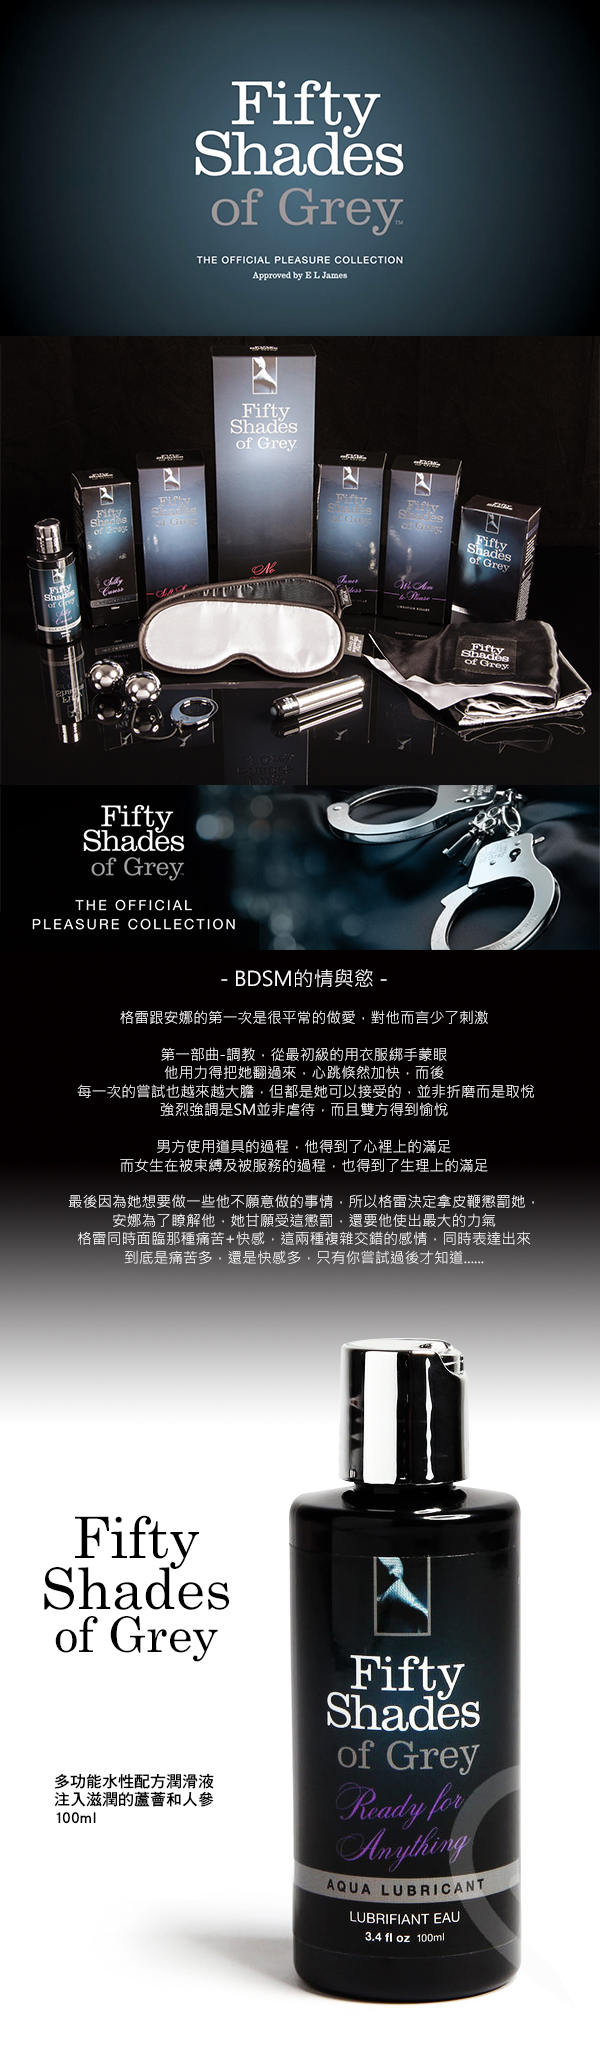 Fifty Shades Of Grey 格雷的五十道陰影 一切就緒 水性潤滑液 100ml